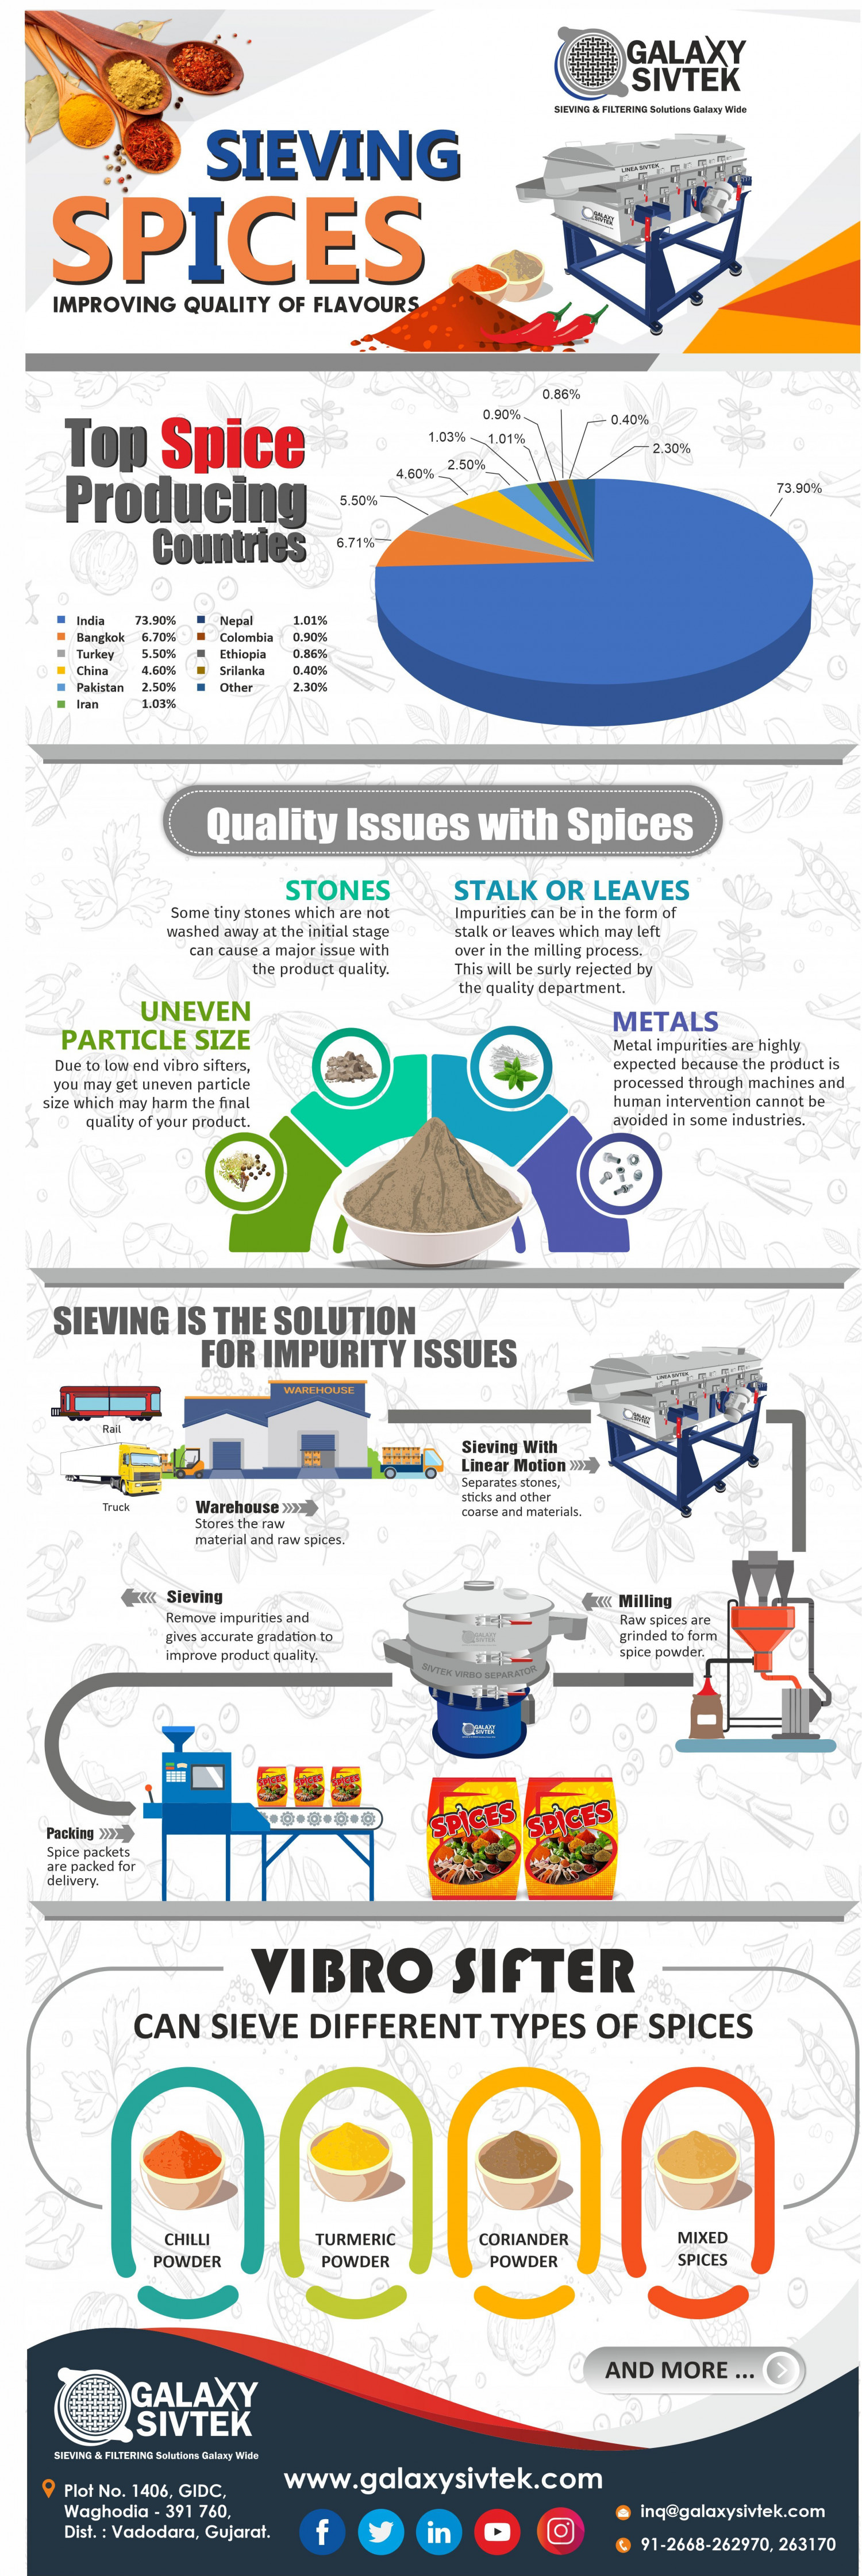 Sieving Spices Infographic